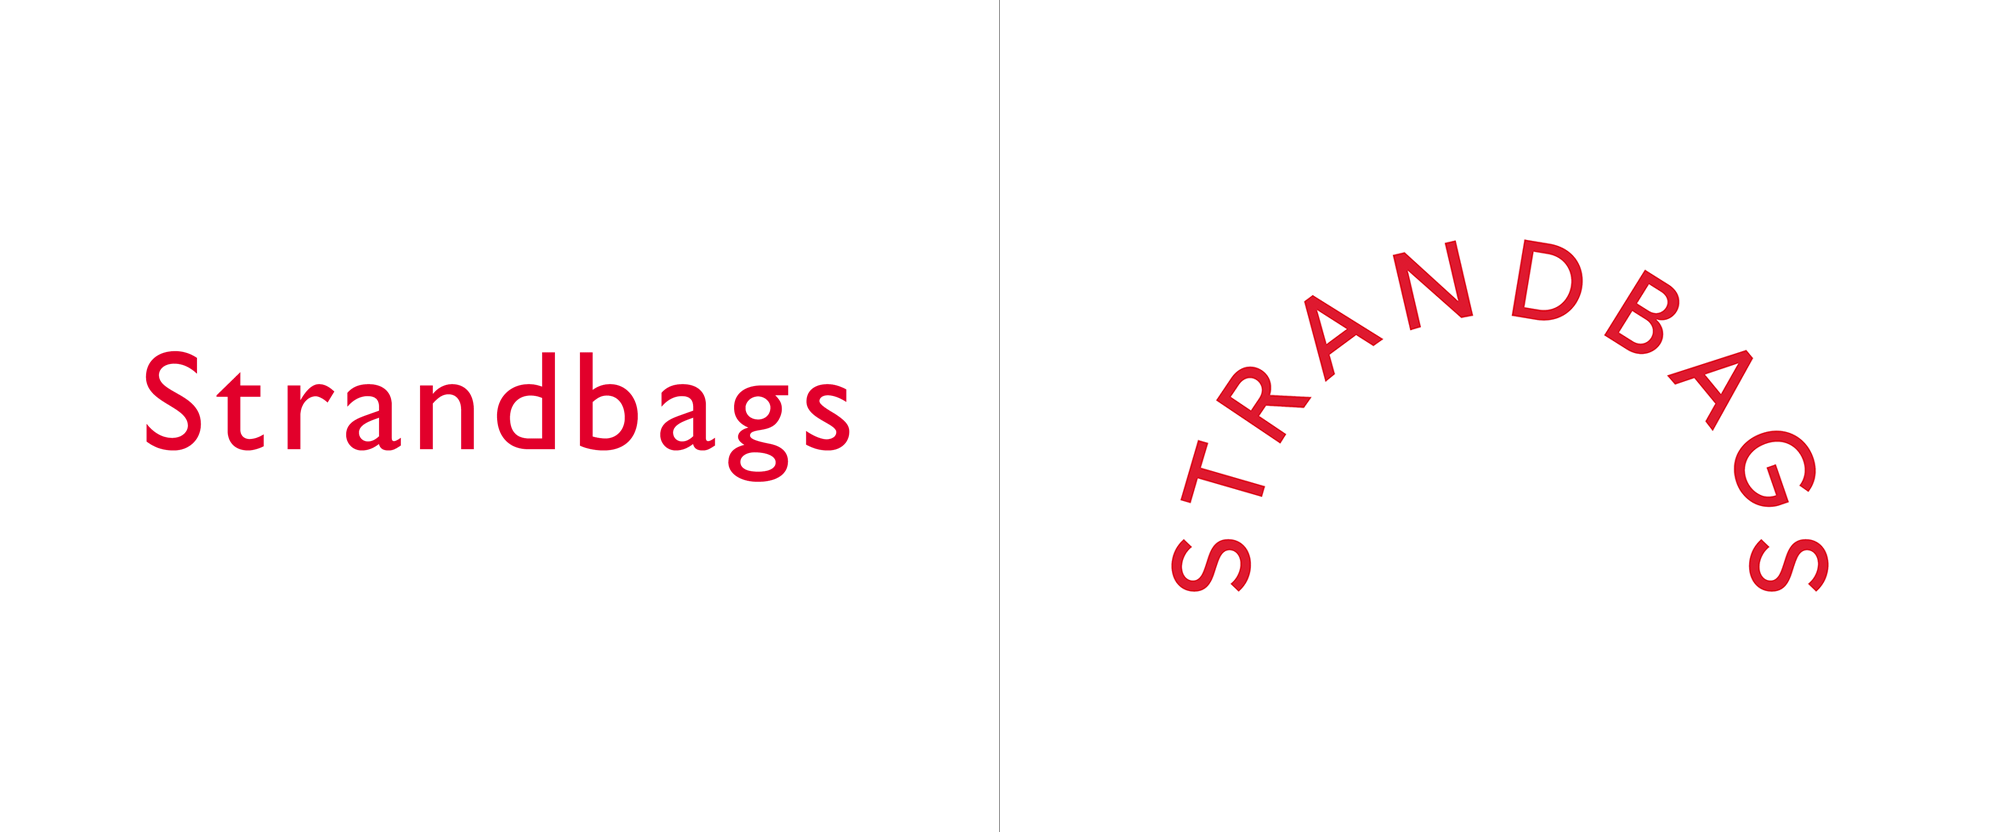 Follow-up: New Logo and Identity for Strandbags by Frost* Design